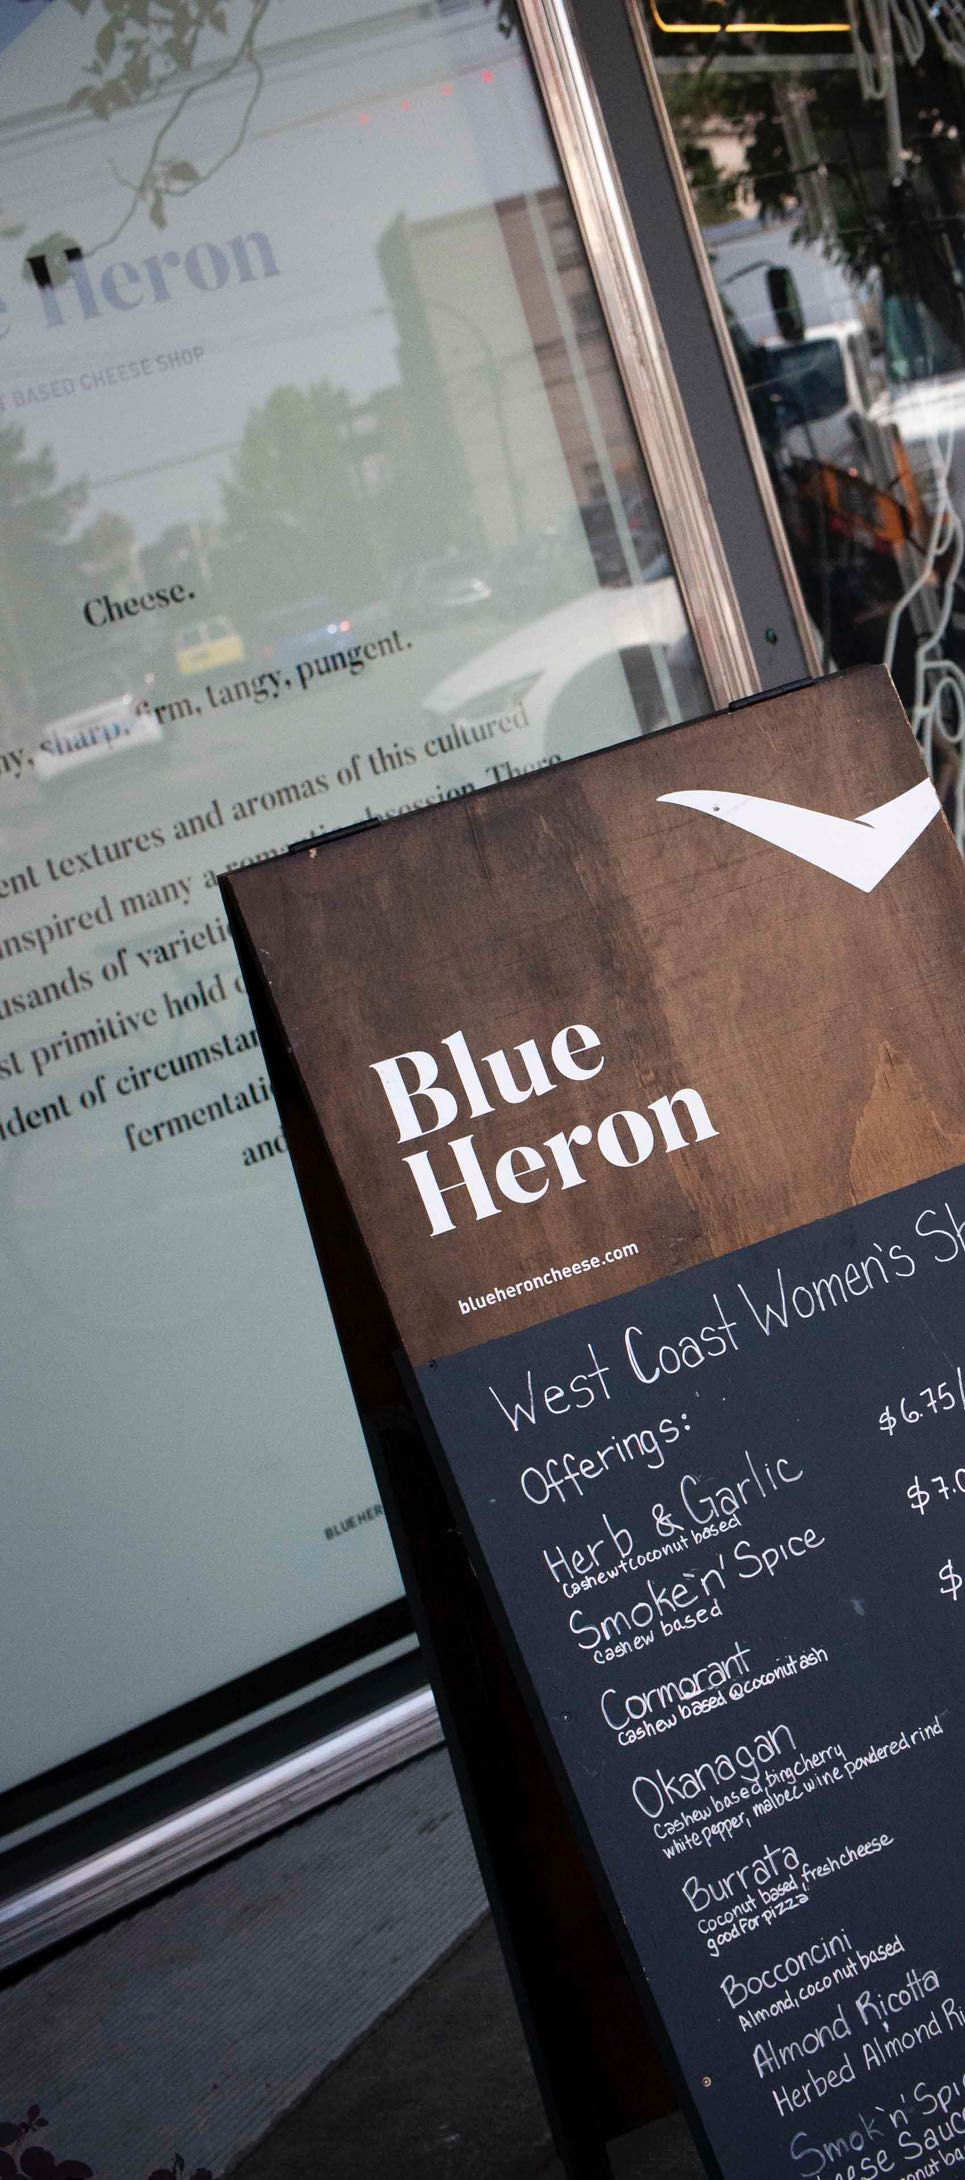 Blue Heron Storefront with store windows featuring a handsigned brand manifesto with branding applied to a sandwich board placed next to it — by Dima Yagnyuk.